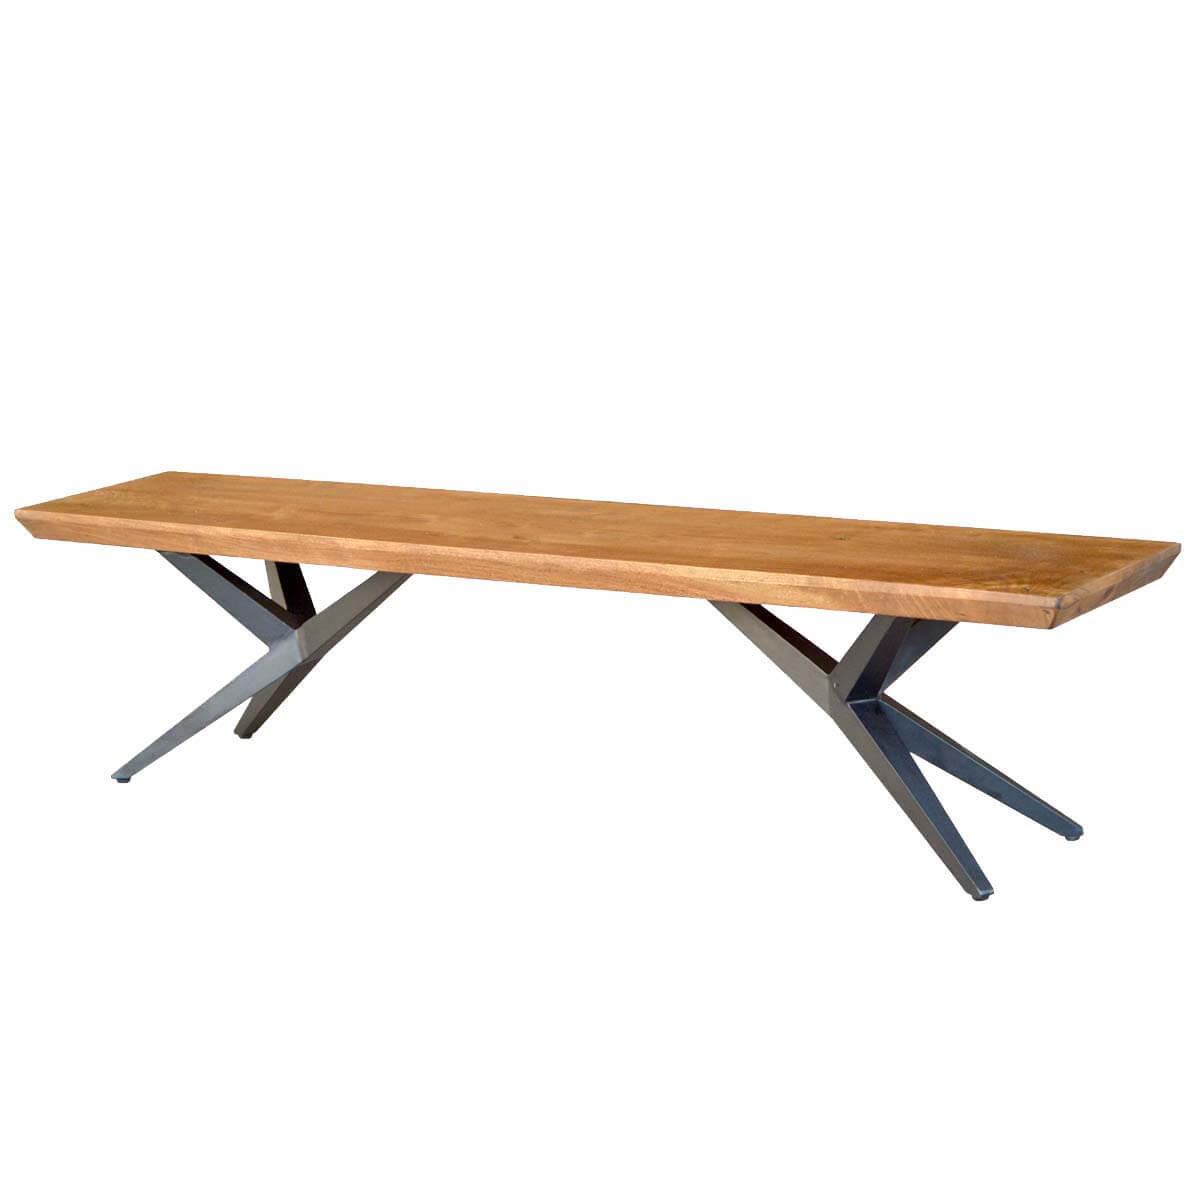 Lorna Contemporary Acacia Wood Iron Airloft Bench